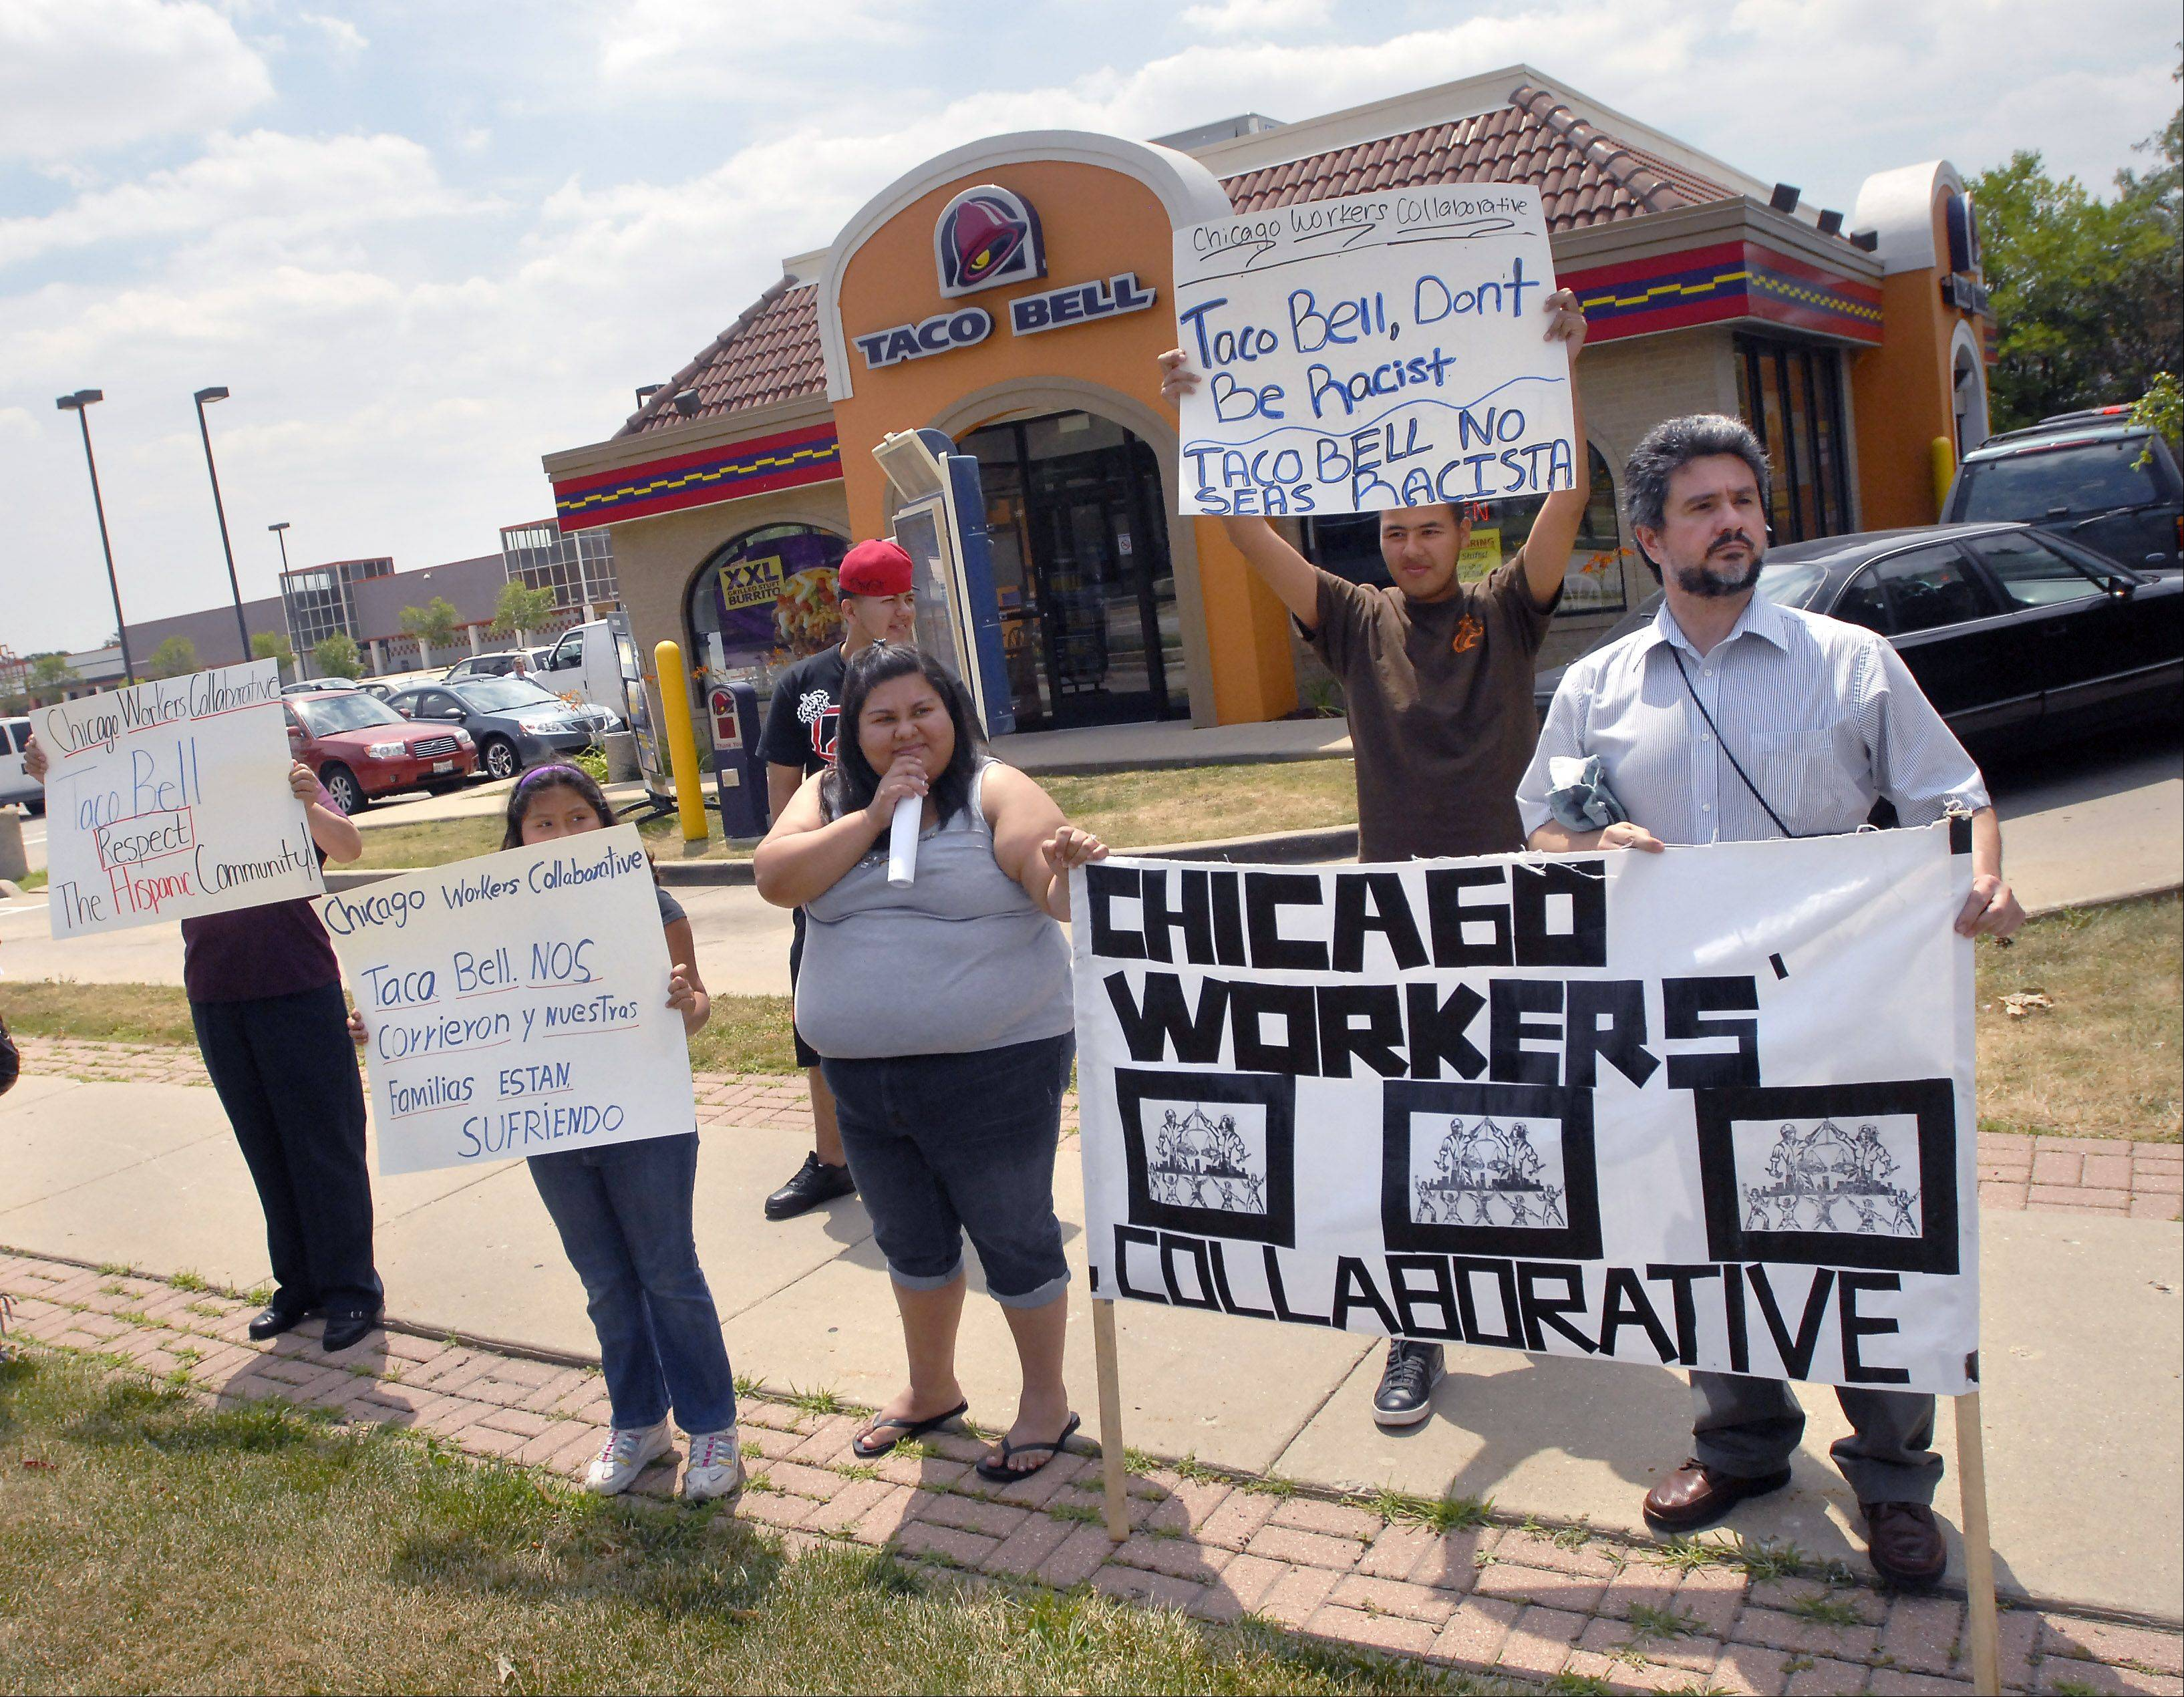 Members of the Chicago Workers' Collaborative stage a protest Thursday in front of the Taco Bell restaurant on Kirchoff Road in Rolling Meadows. They allege that several workers, some working there for over 10 years, were unfairly fired.